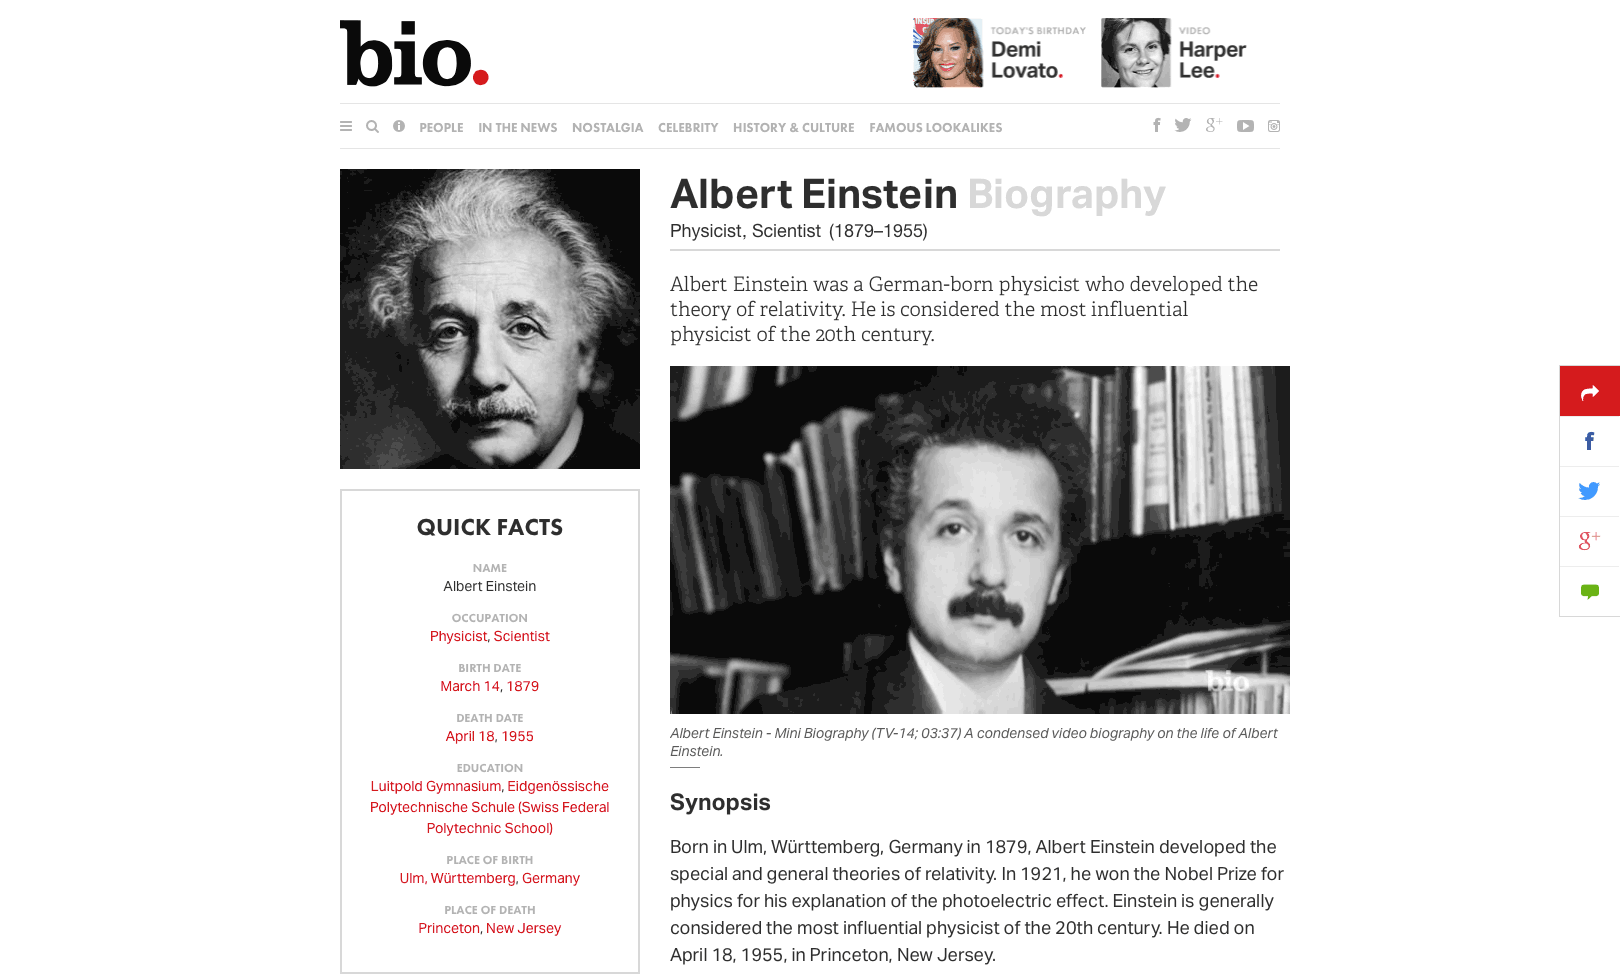 Biography.com features detailed biographies of notable people, often including videos too.